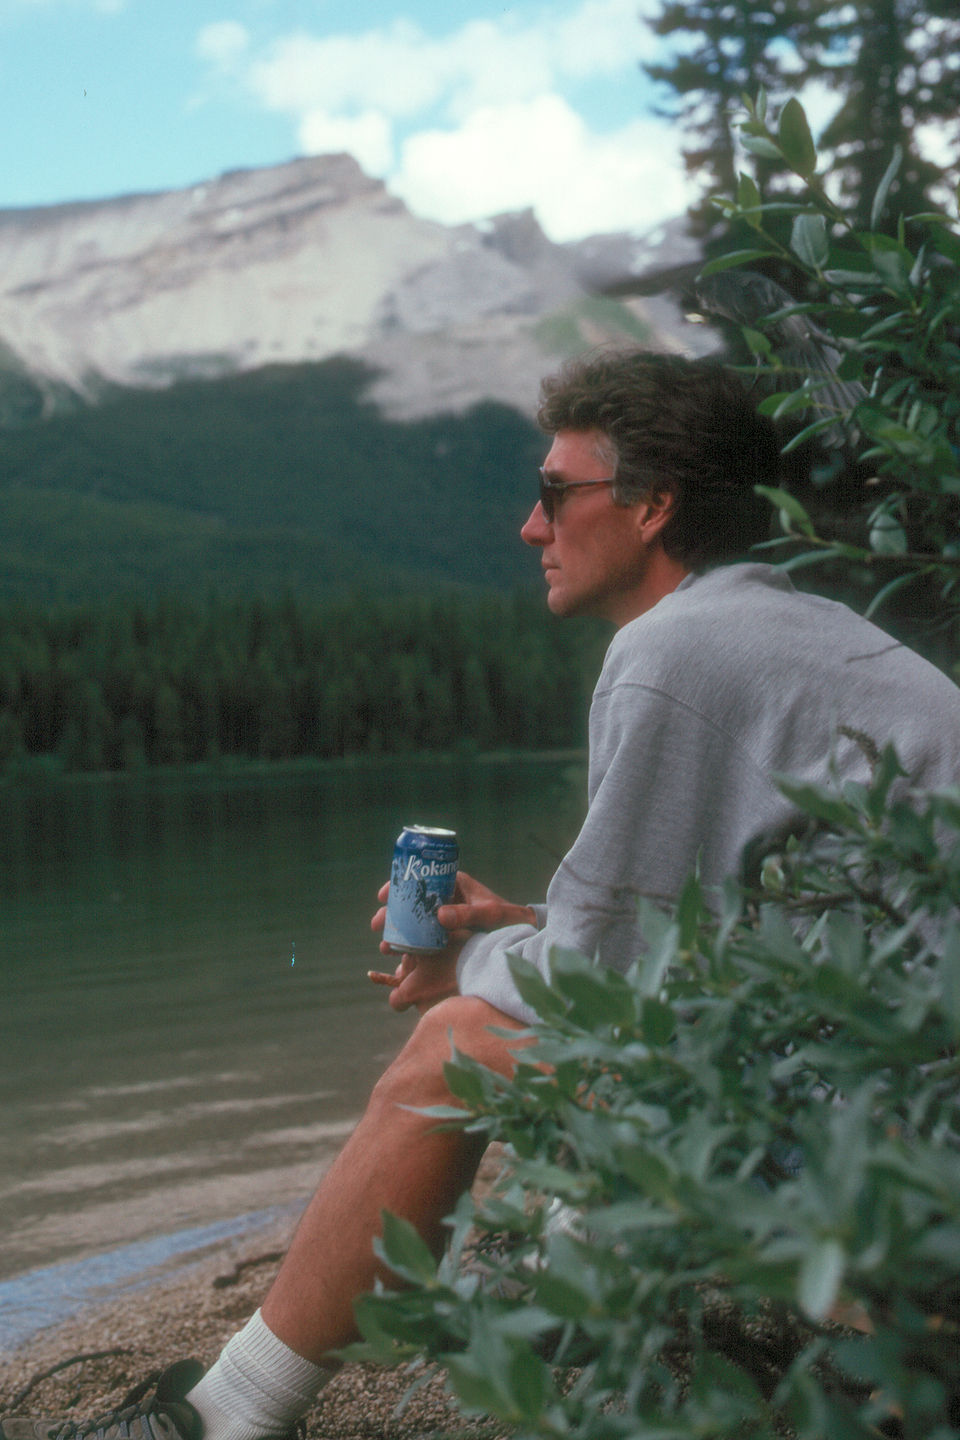 Pensive Herb and beer on Maligne Lake